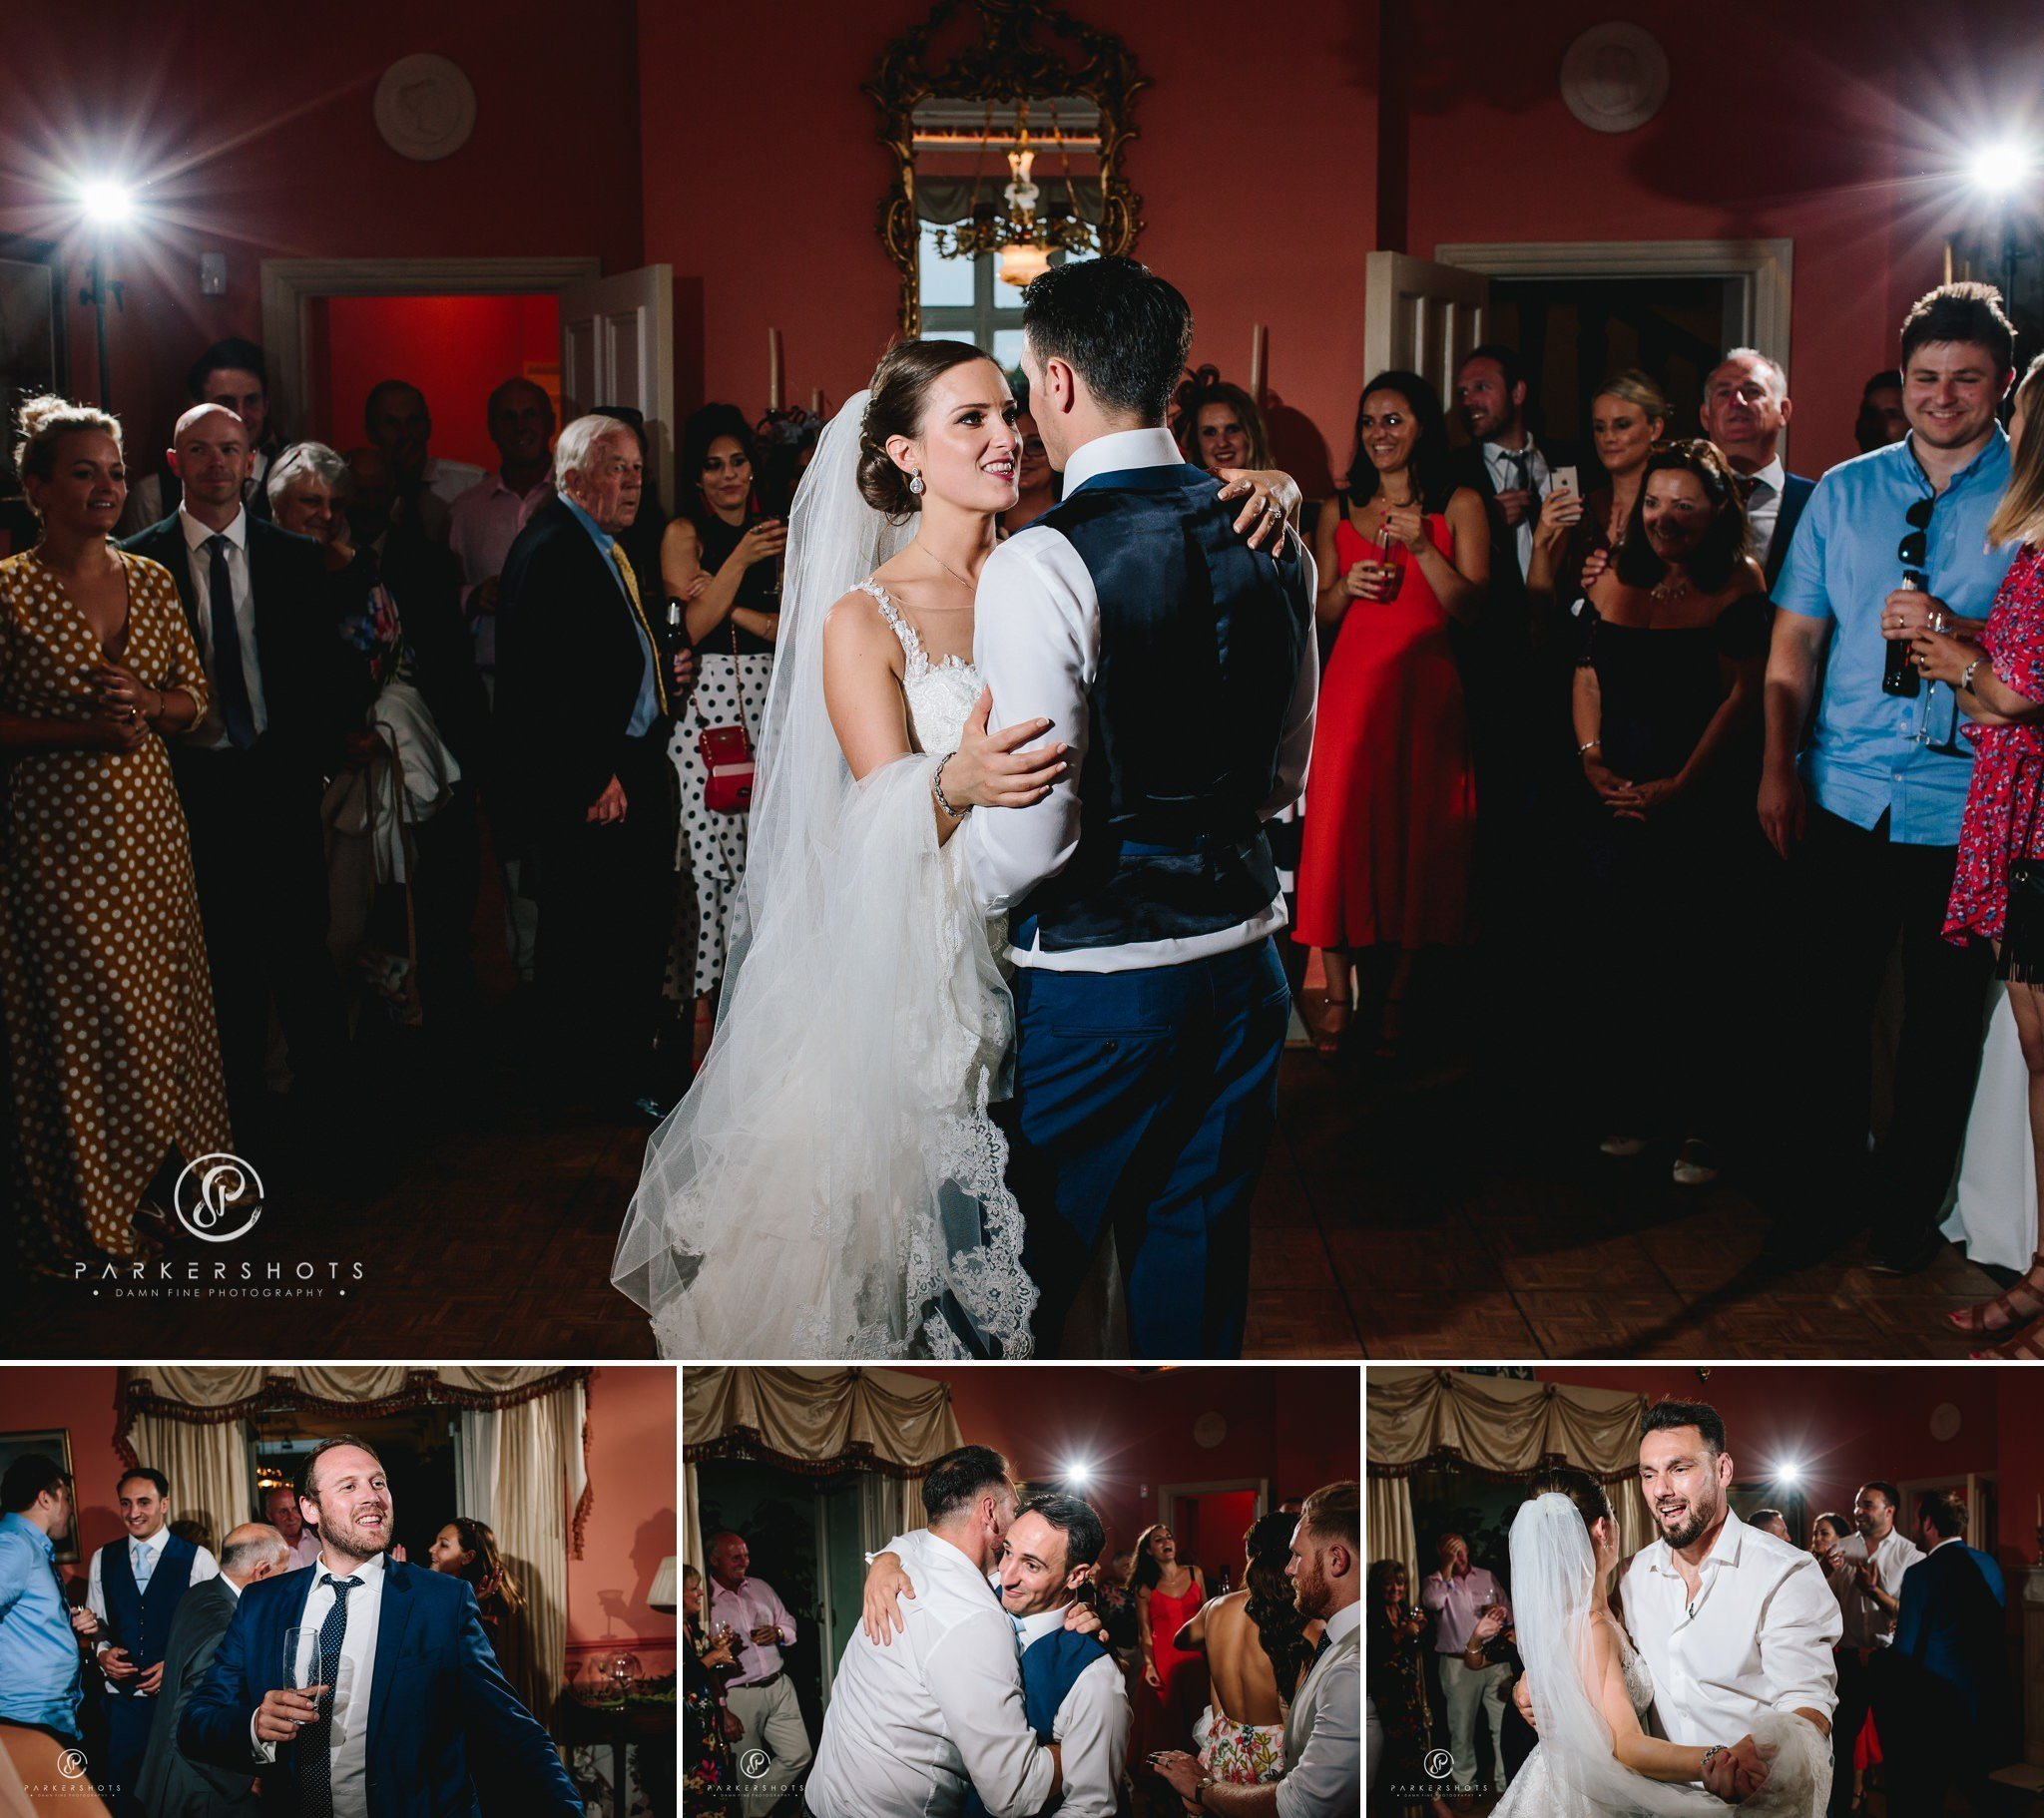 Wadhurst Castle Wedding Photographer - The first dance